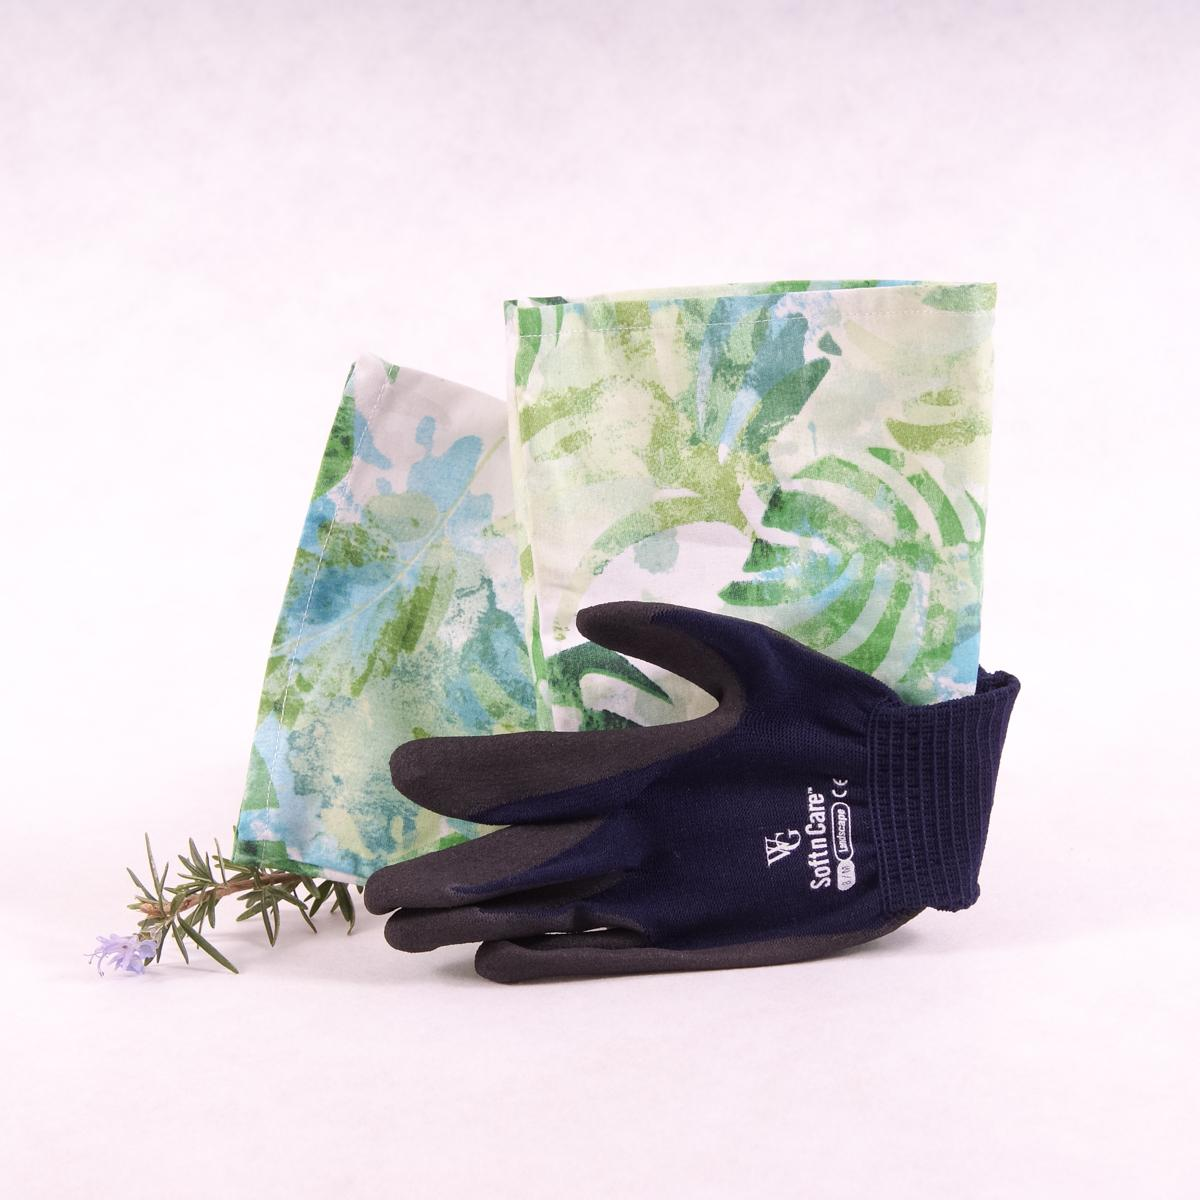 Long sleeve gardening gloves - Greensleeves - Gloves - Throw Some Seeds - Australian gardening gifts and eco products online!